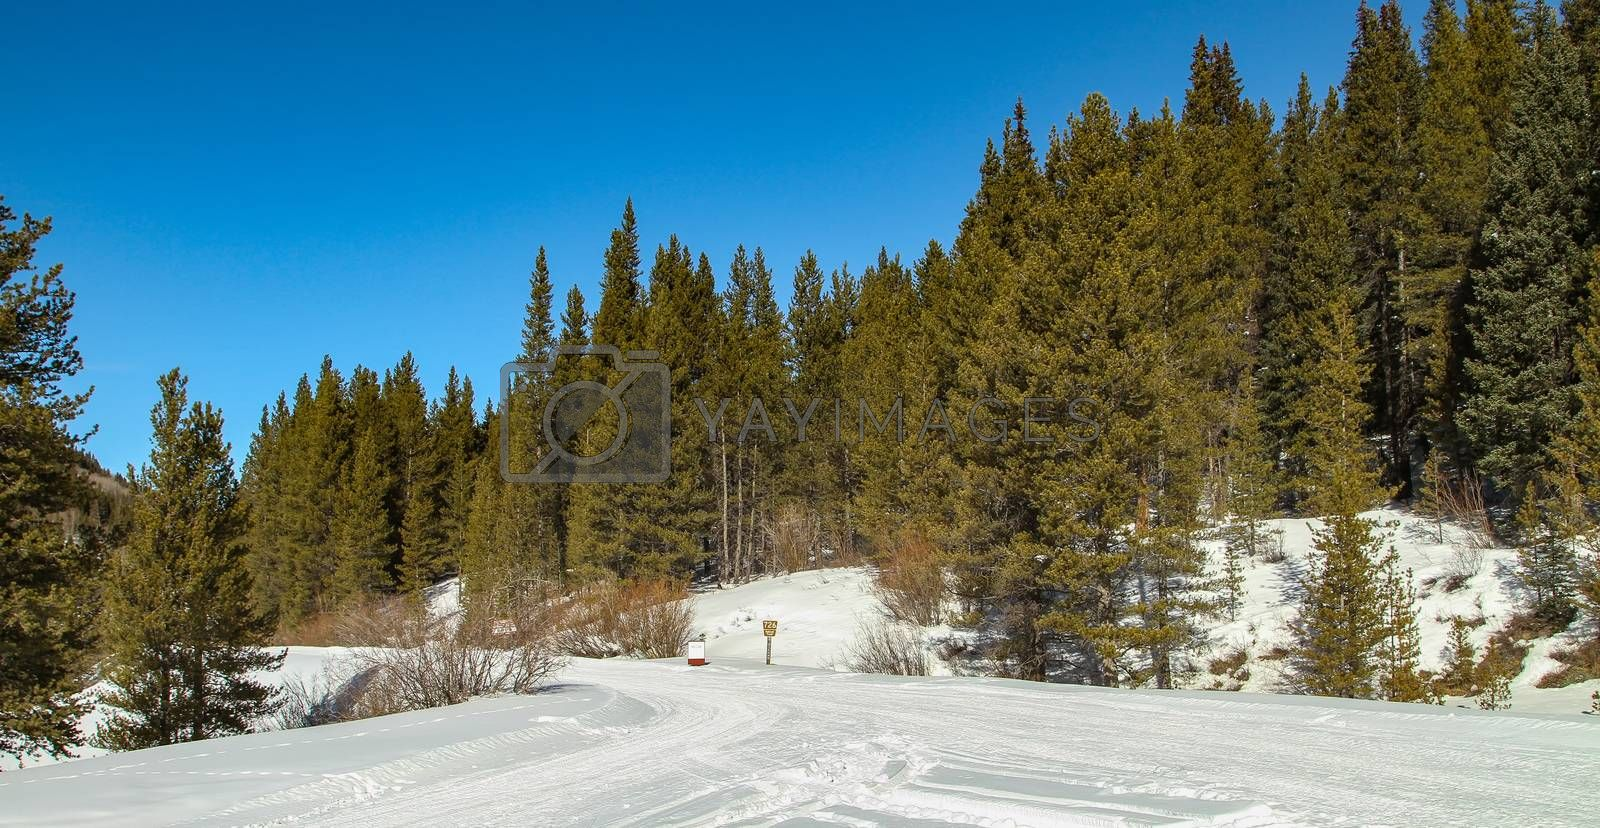 Snow mobile trails near Camp Hale, Colorado ready to be used.  Cold winter day in the forest.